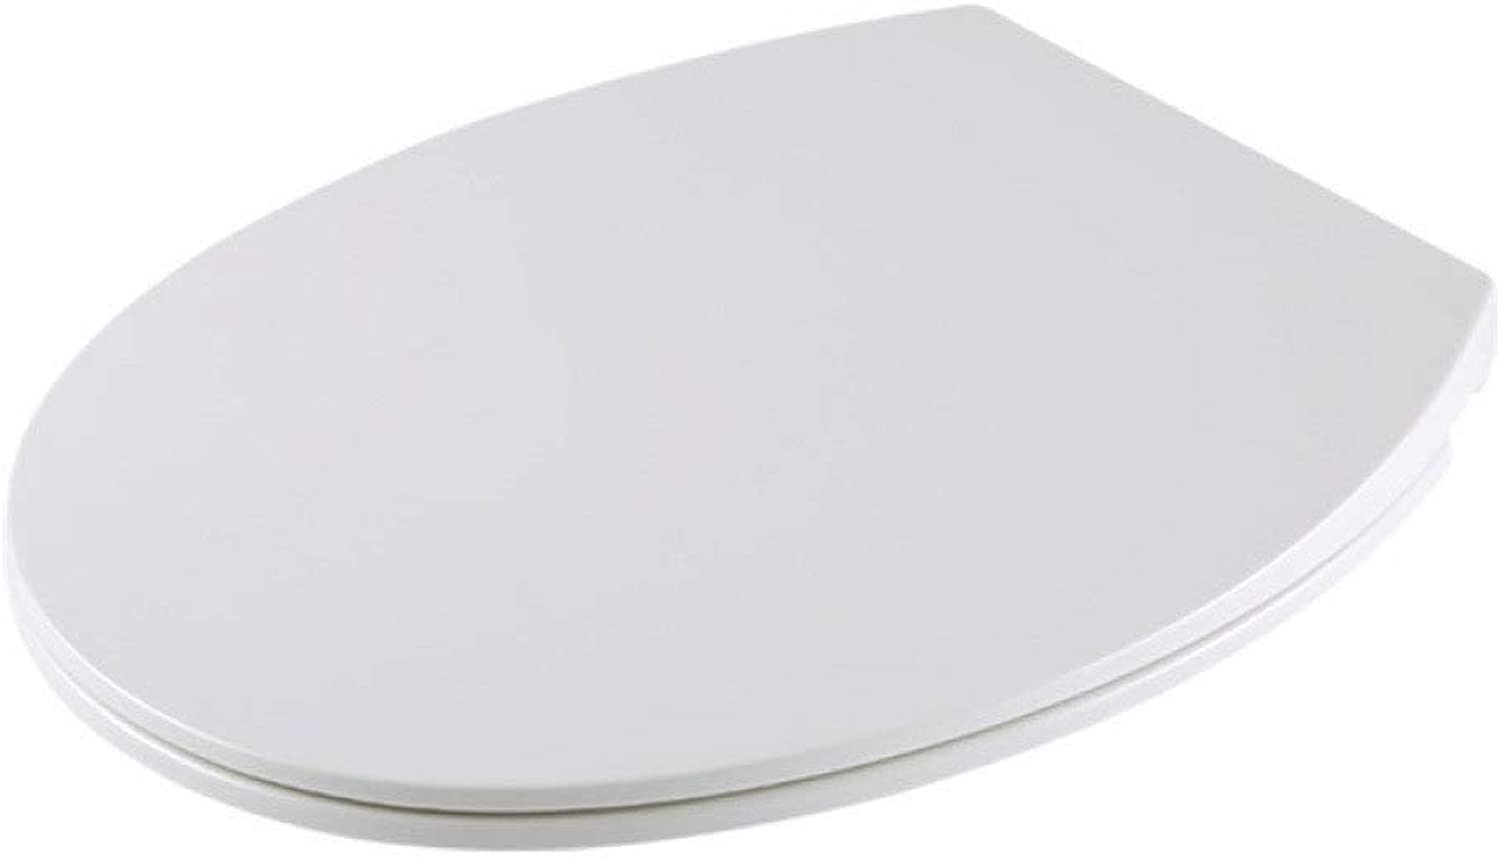 Toilet Lid Toilet Seats, Ultra-thin O Type Toilet Seat Soft Close Antibacterial Adjustable Top Mounted Ultra Resistant For Bathroom,White-40.544.5  37.5cm